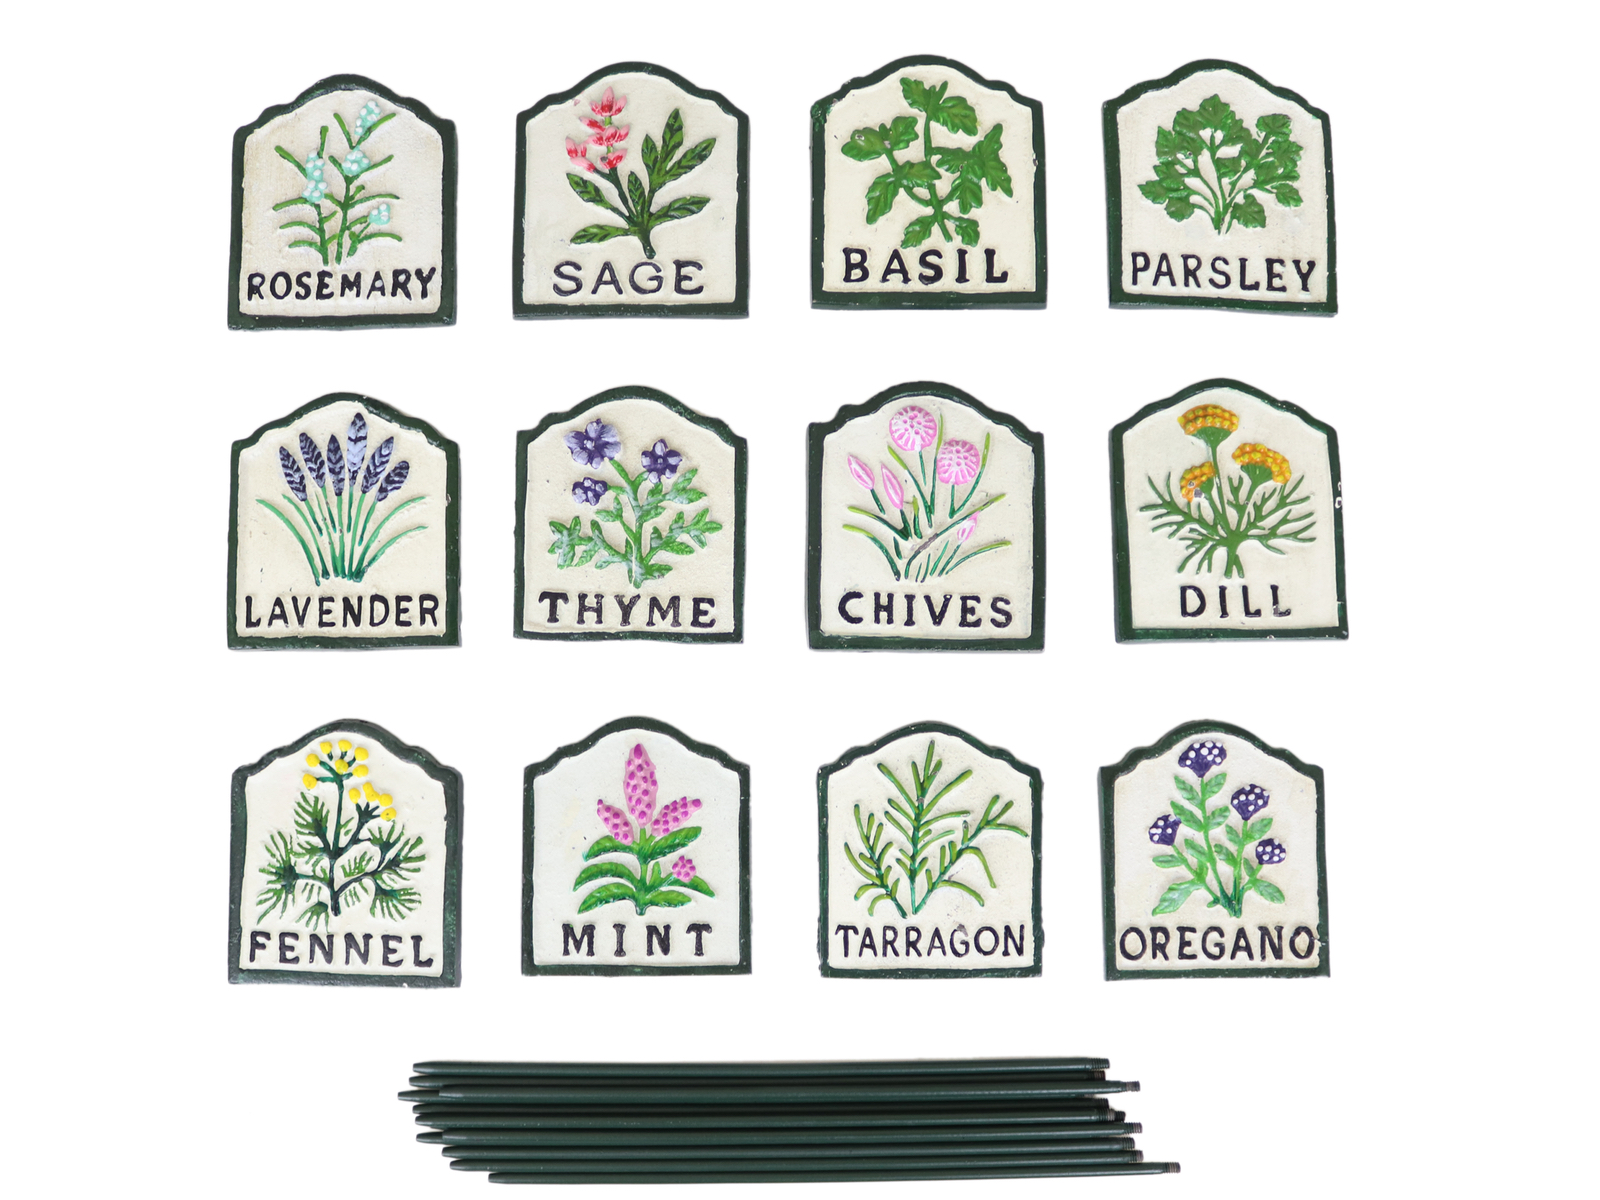 GARDEN ALLOTMENT HOME GIFT CHIVES GREAT CAST IRON PAINTED HERB STAKE SIGN